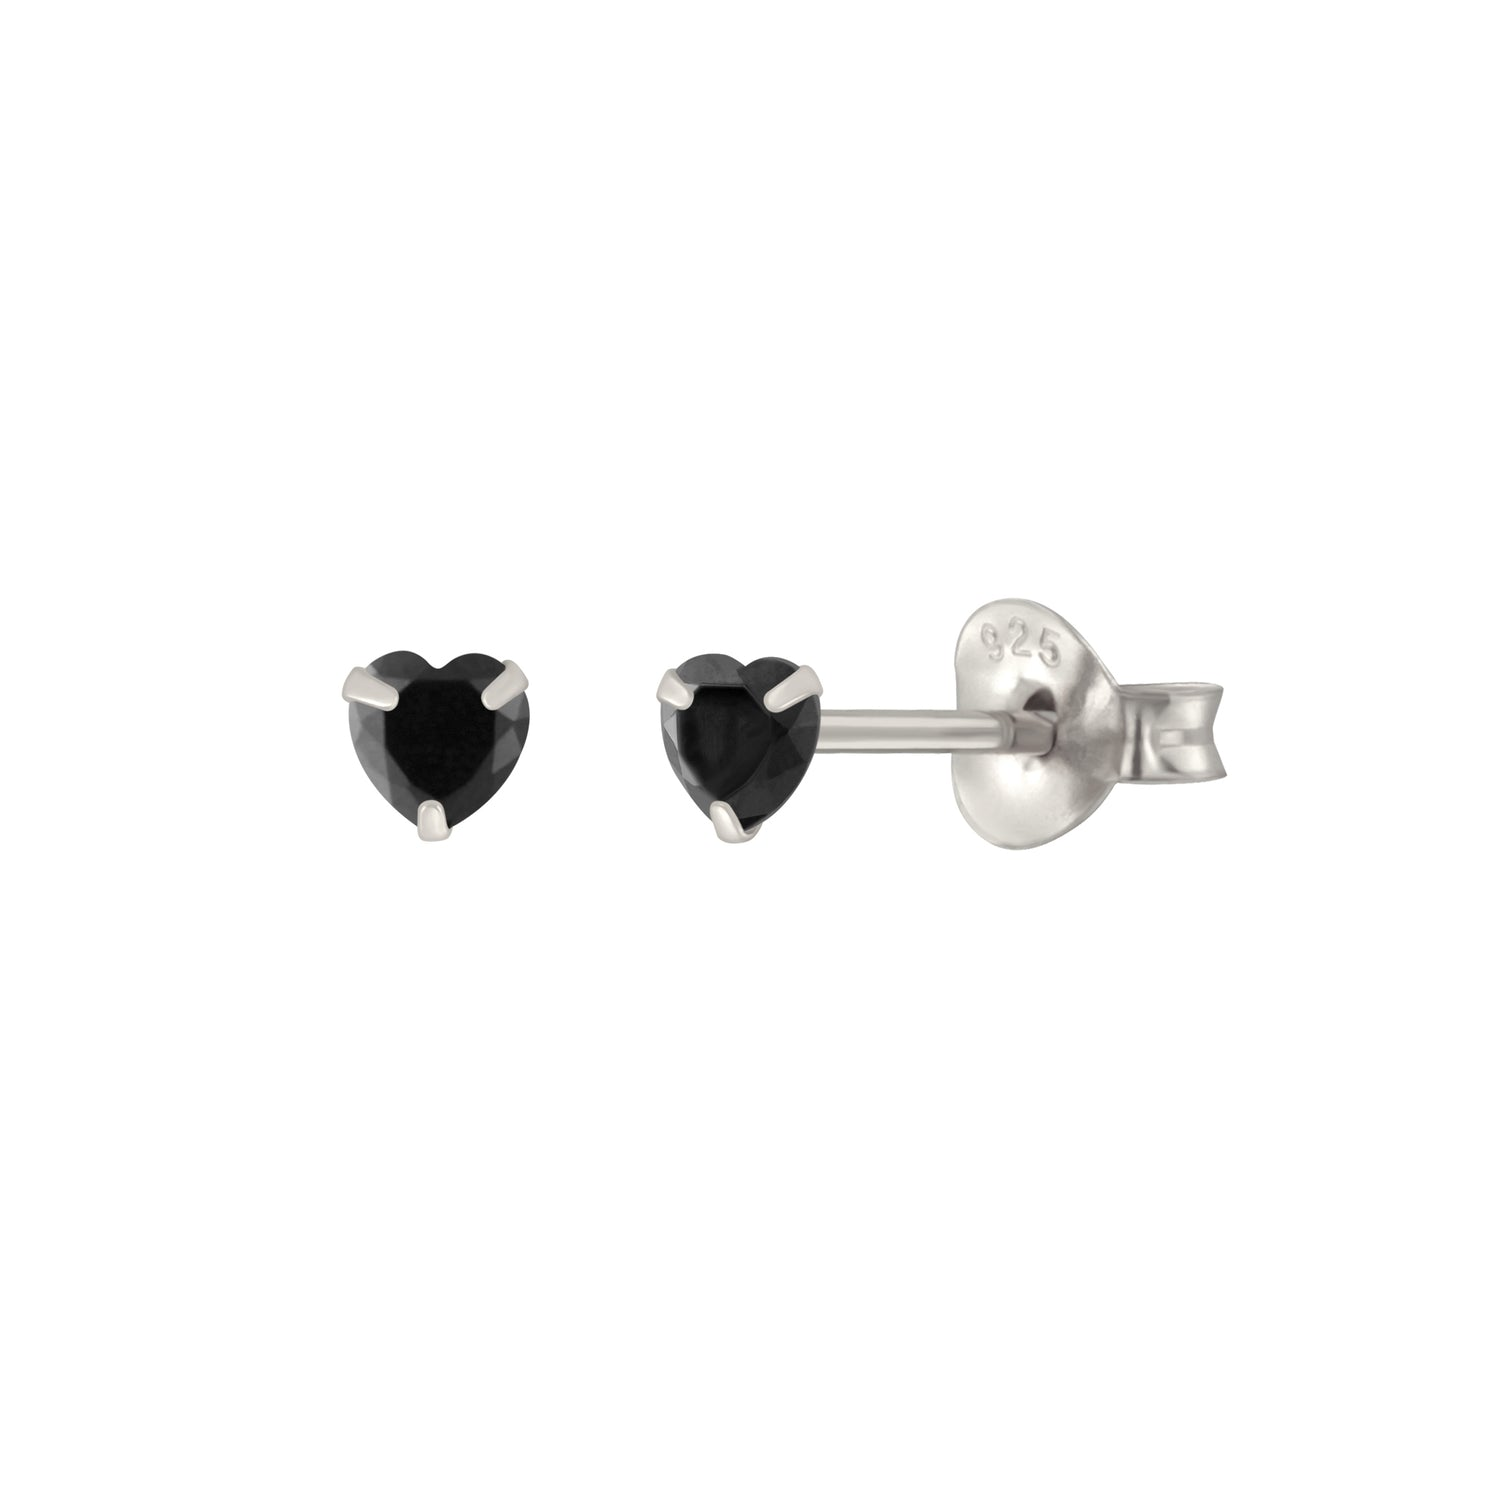 Shining Black Heart Stud Earrings